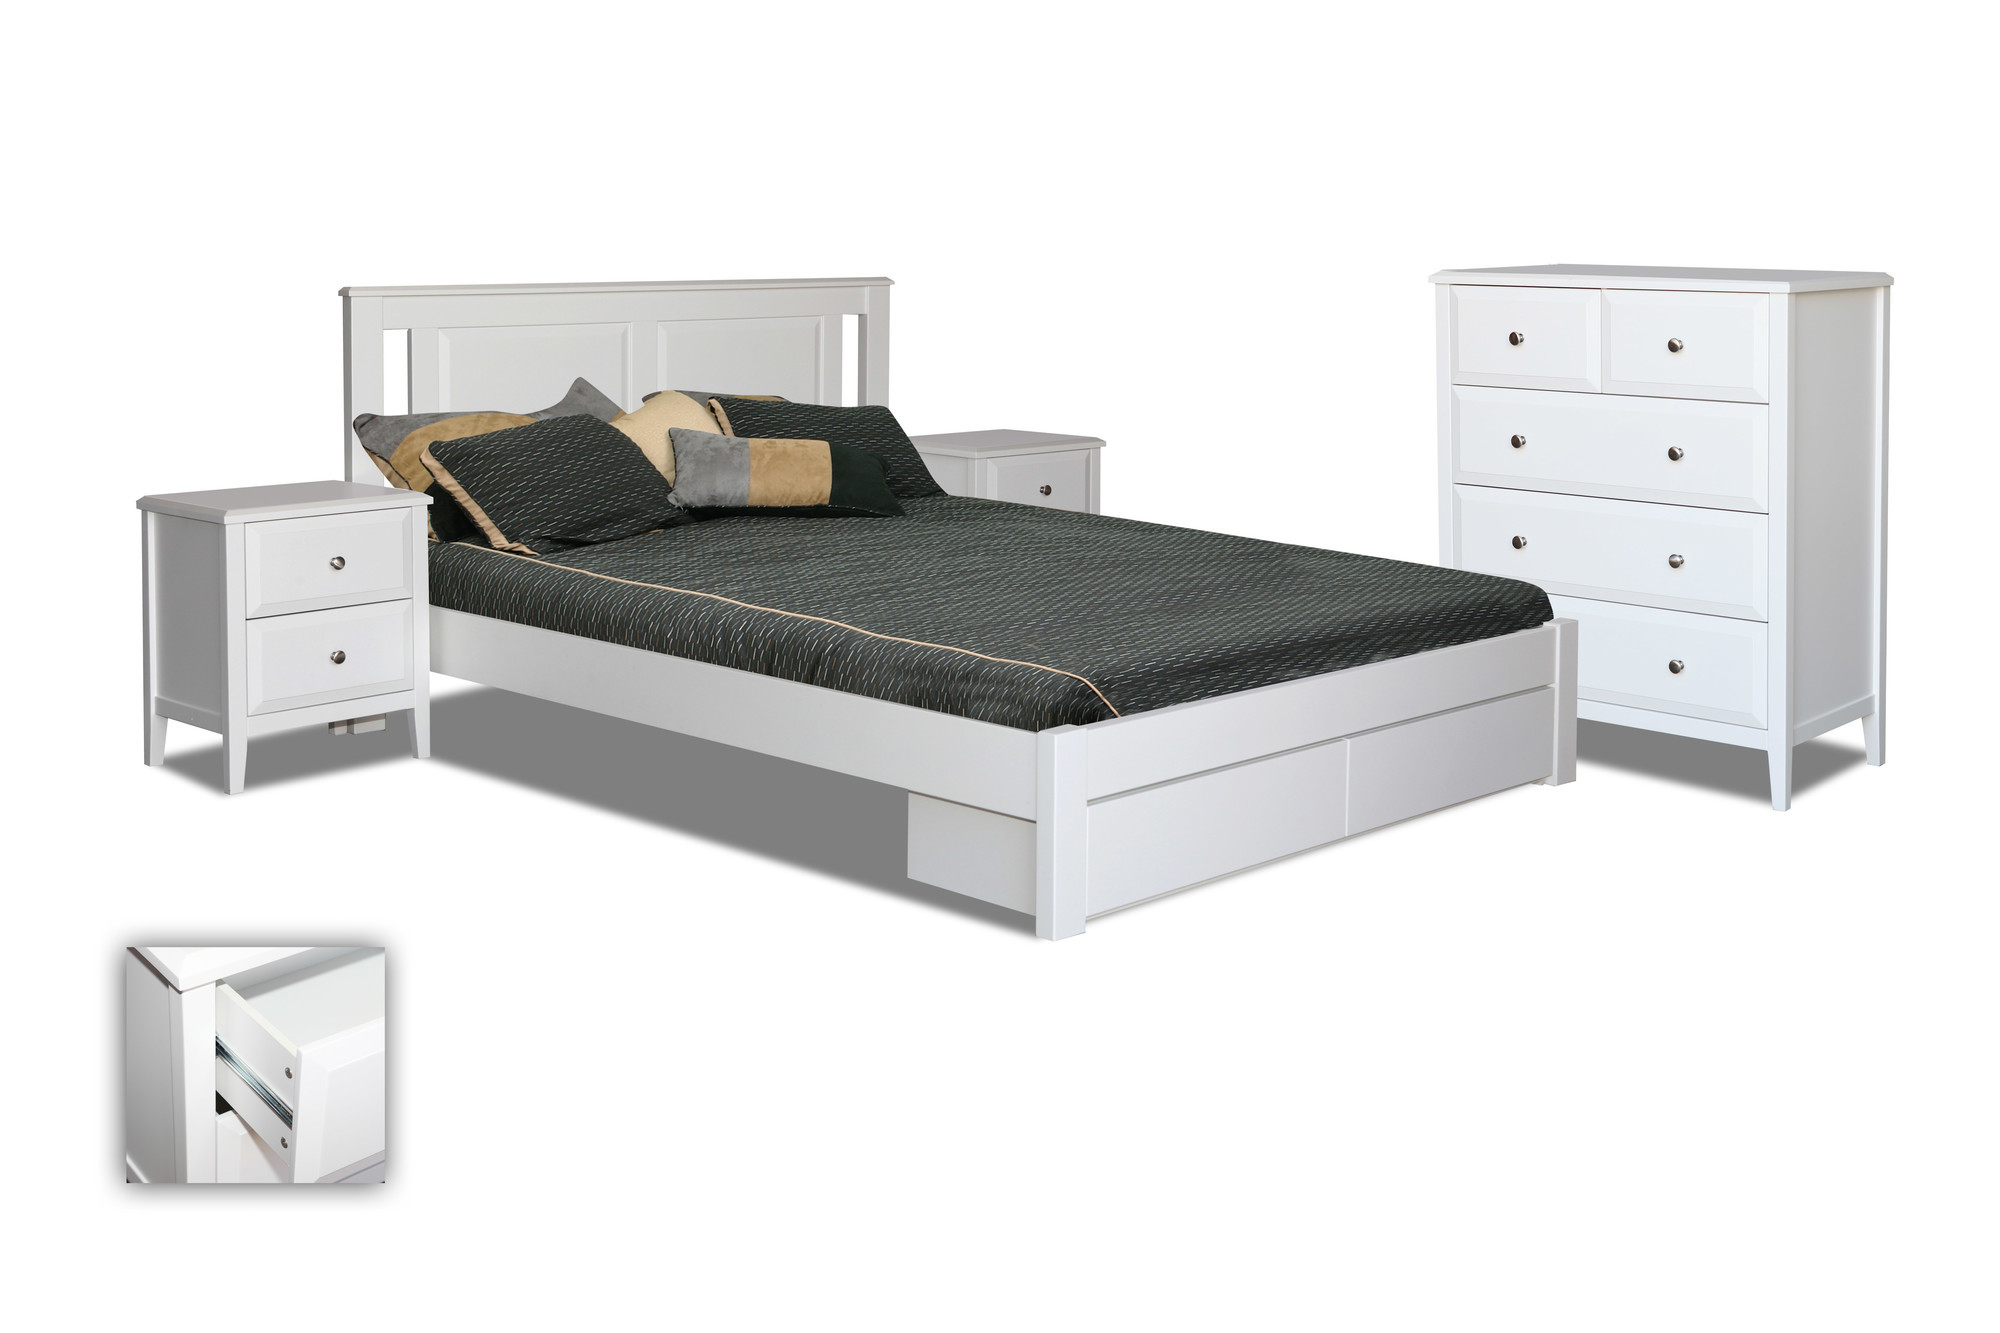 King Single Bed With Drawers Avignon King Single Bed With Storage